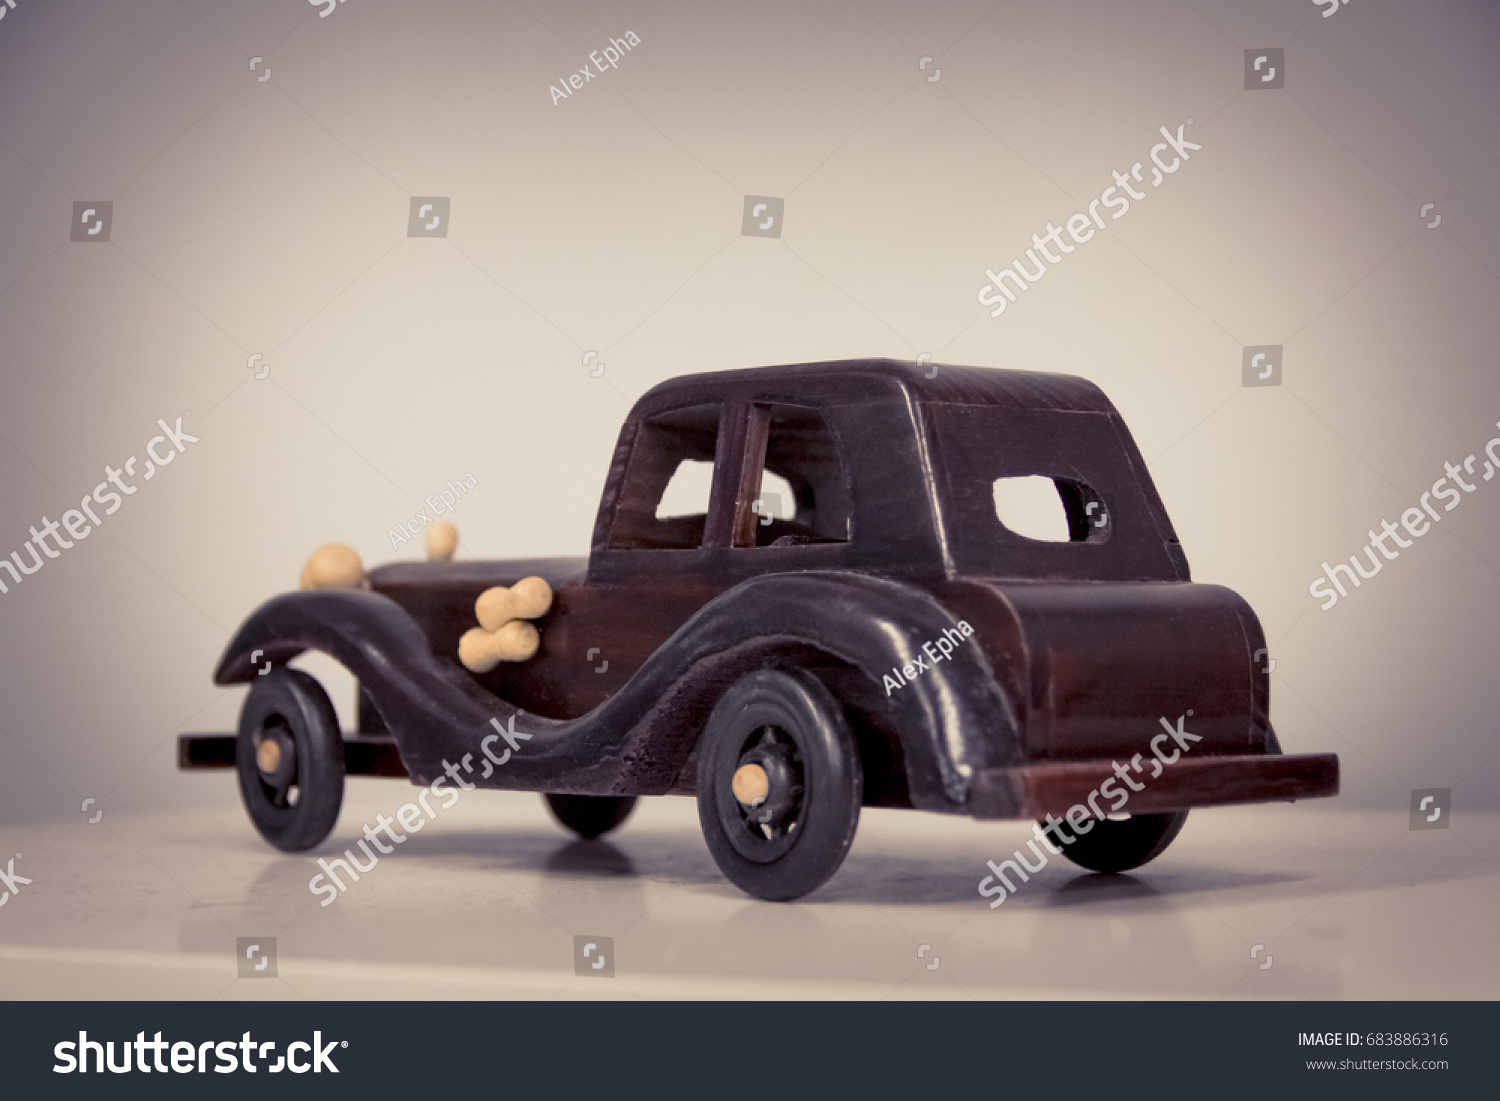 Retro Toy Car Vintage Car Model Stock Photo 683886316 - Shutterstock